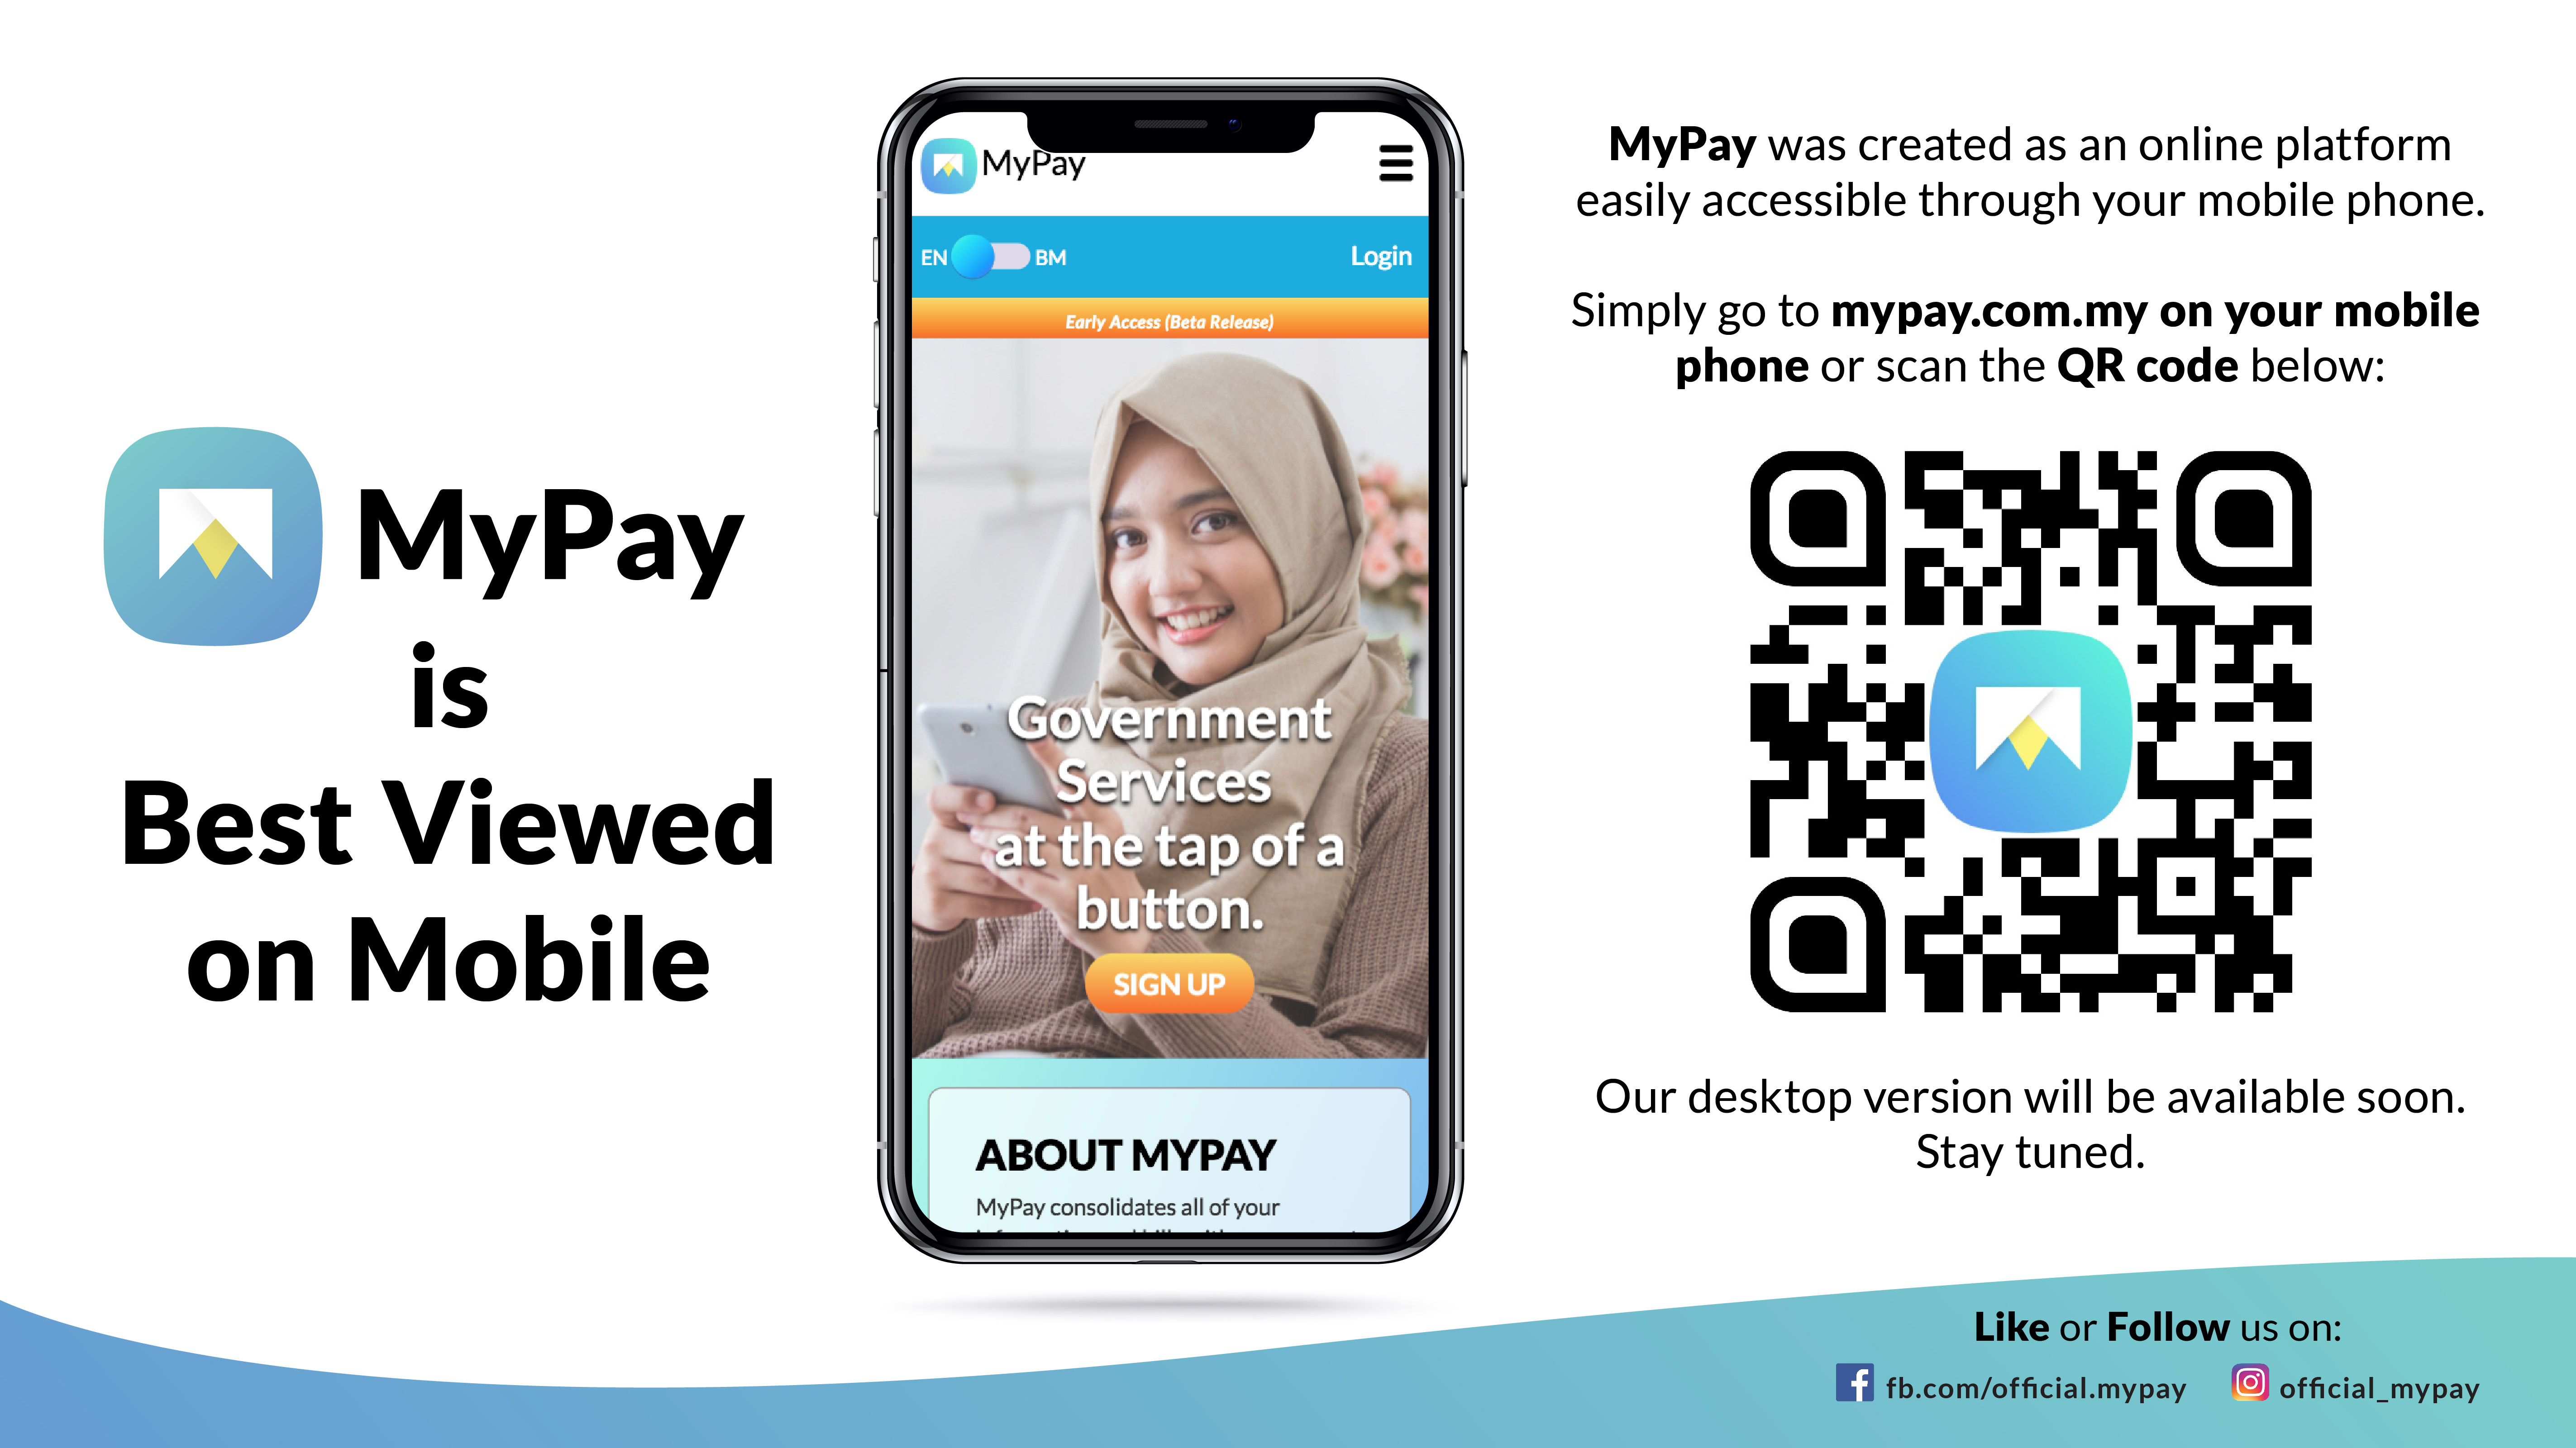 MyPay consolidates all of your bills with government agencies online, making payments easier and manageable